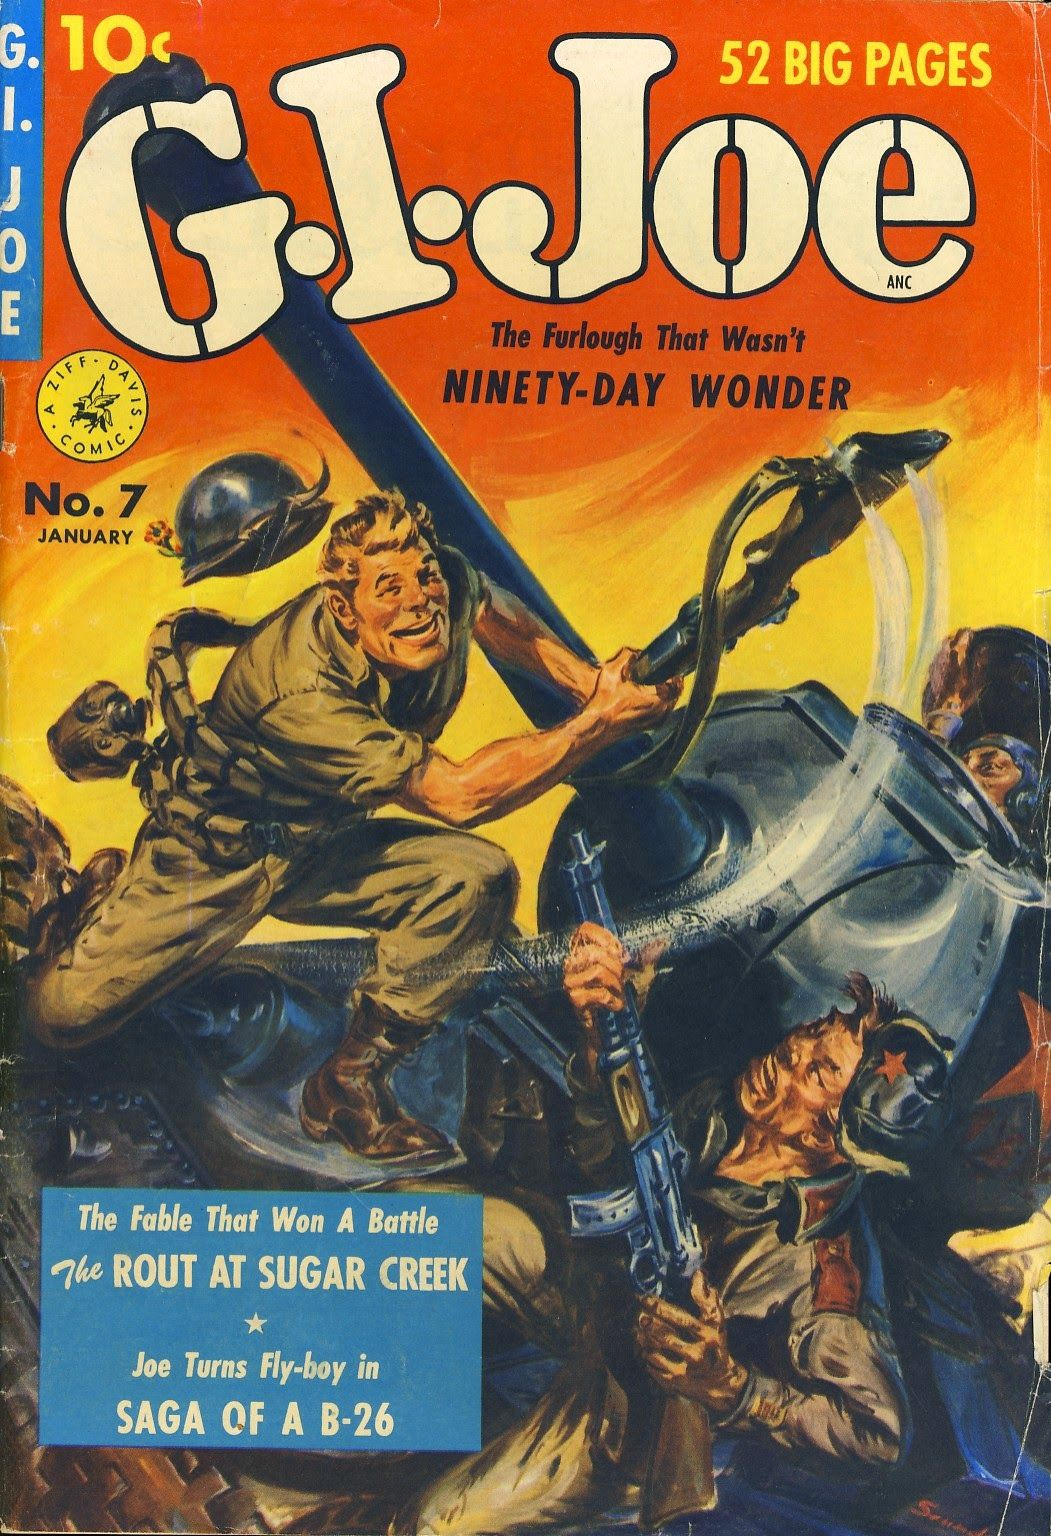 """Splash page for """"Saga of a B-26,"""" from G.I. Joe, no. 7, January 1952; cover art by Norman Saunders."""